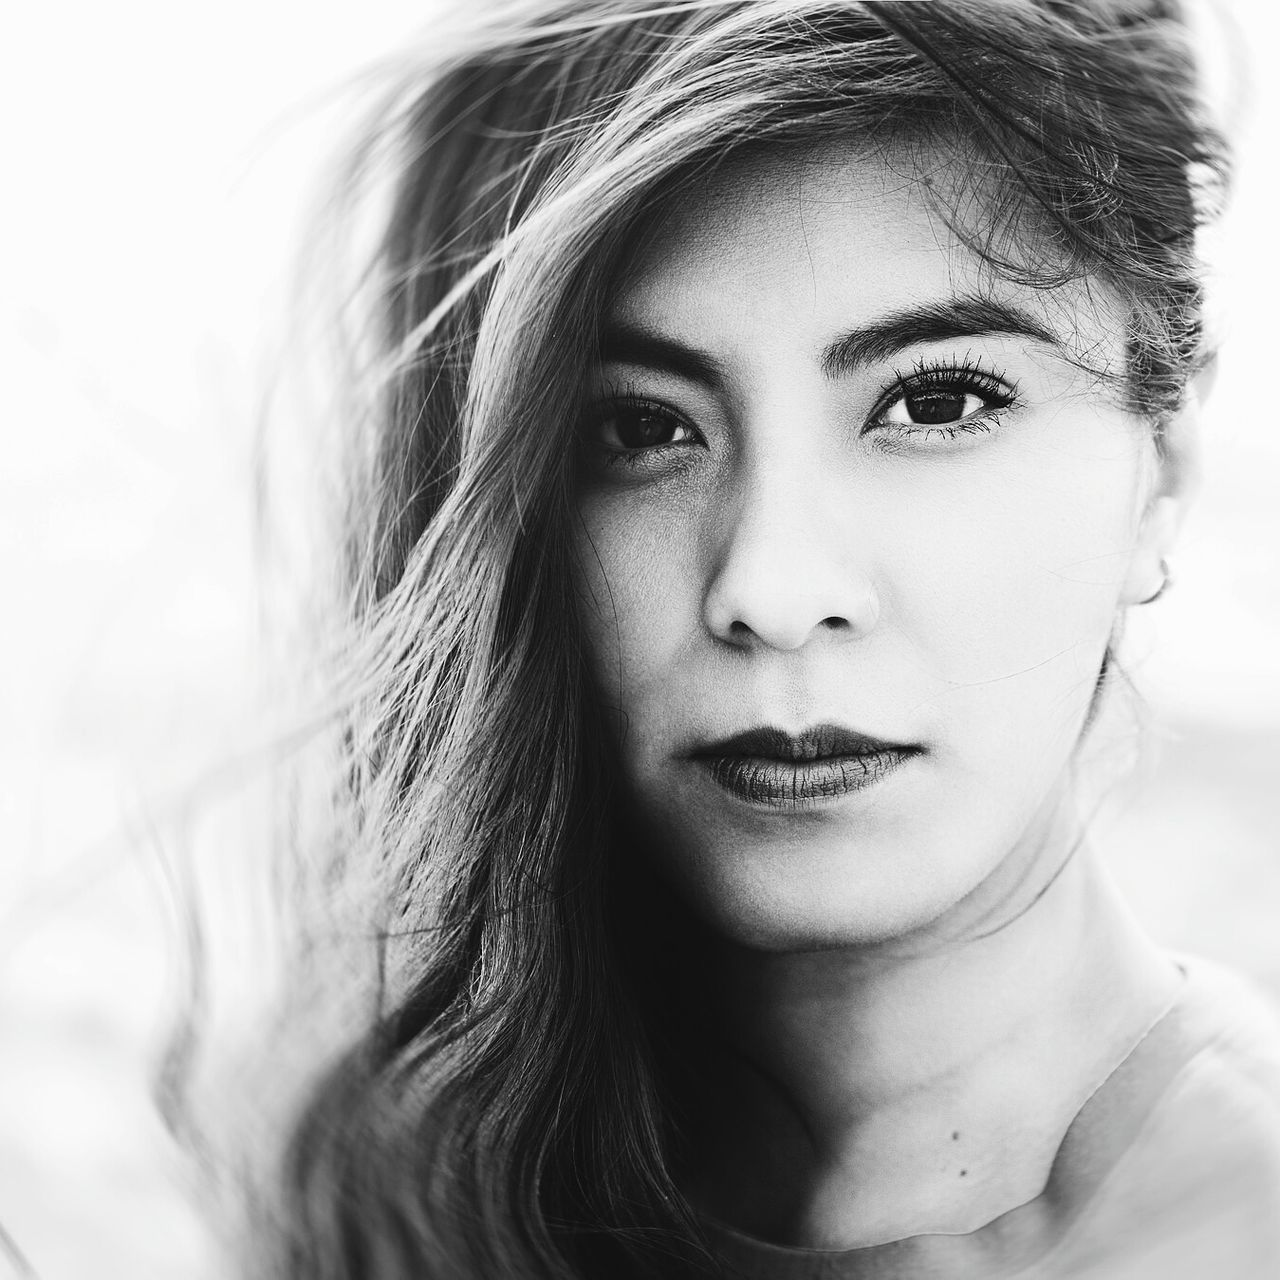 A Solid Portrait Portrait Retouching Nikon D7000 Nikonphotography Bestoftheday Beauty Photooftheday Blackandwhite 50mm F1.8 Mexico Photoshoot Highendfashion Fashion Photography First Eyeem Photo